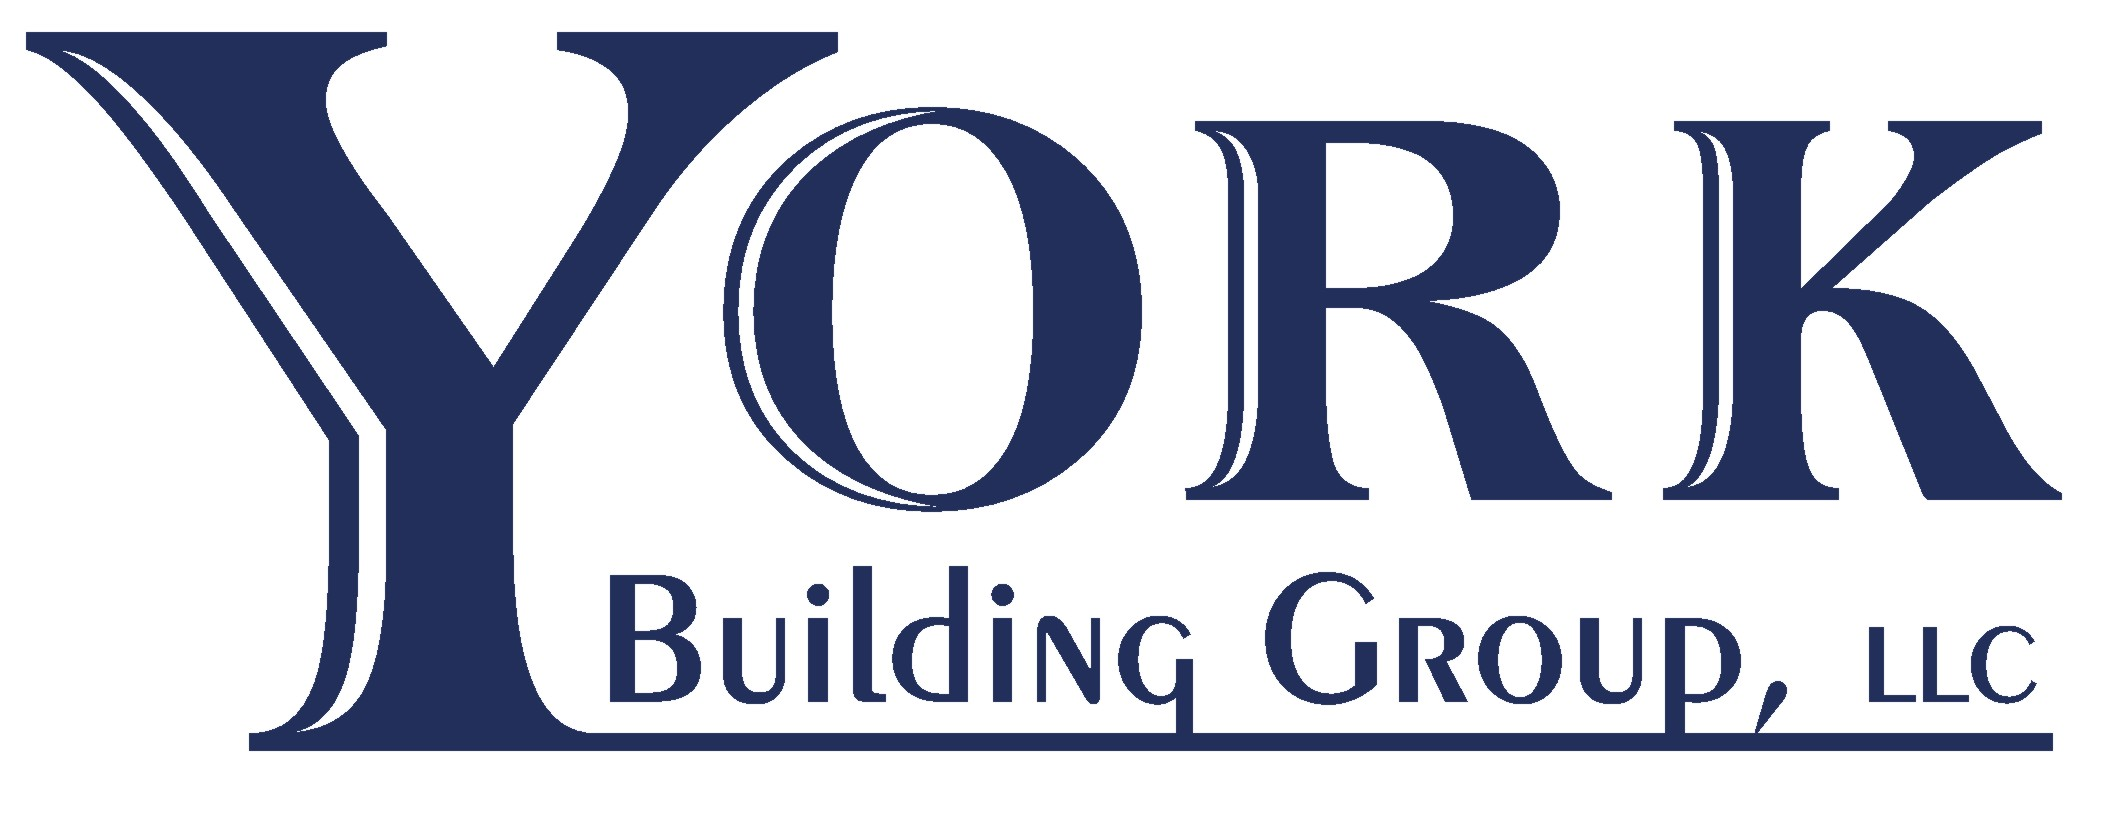 York Building Group Logo.jpg